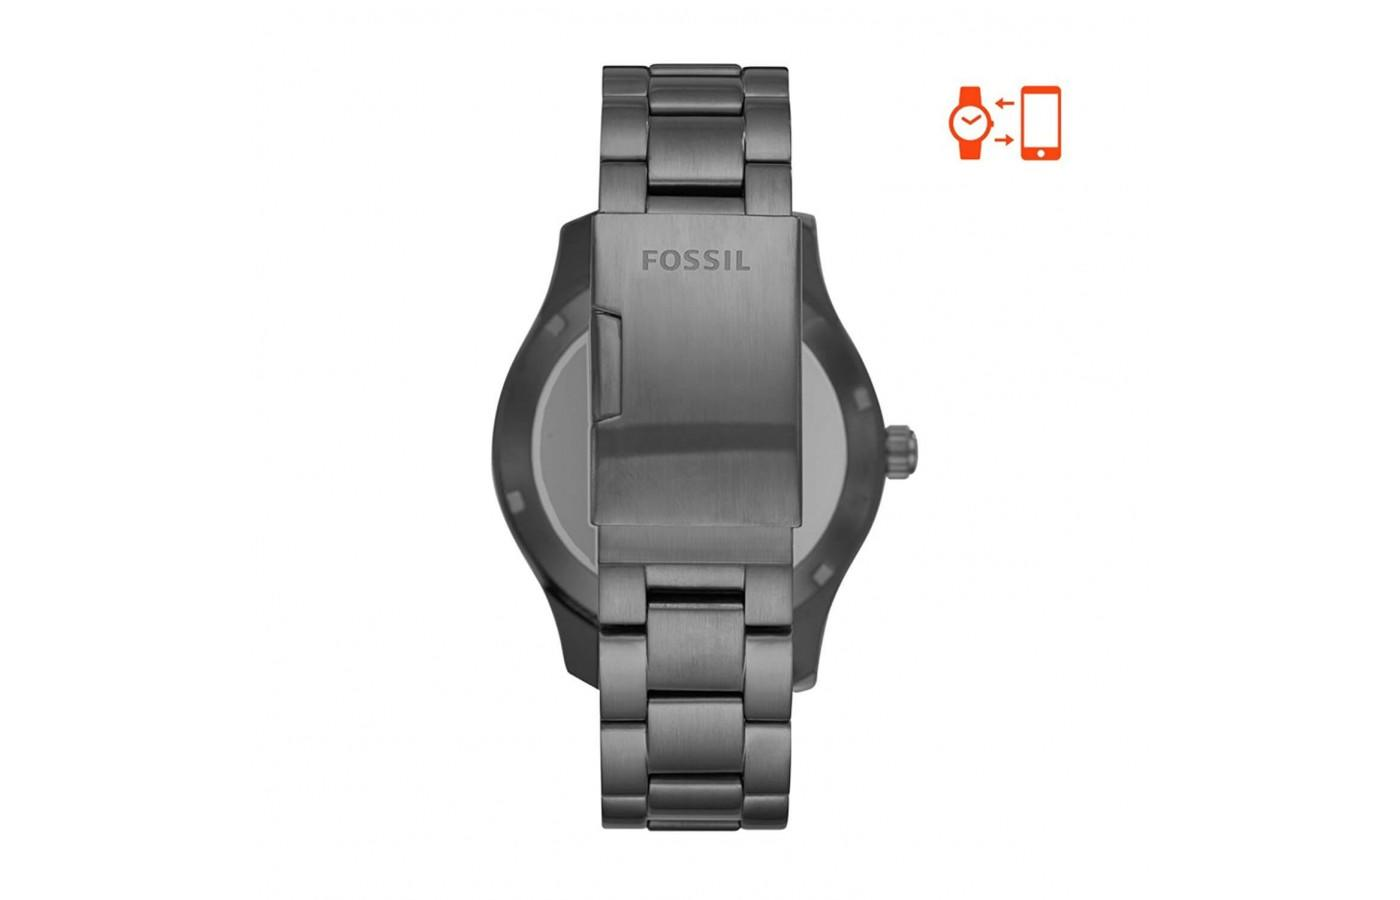 Back of Q Marshal Fossil Gen 2 Smartwatch in Stainless Steel